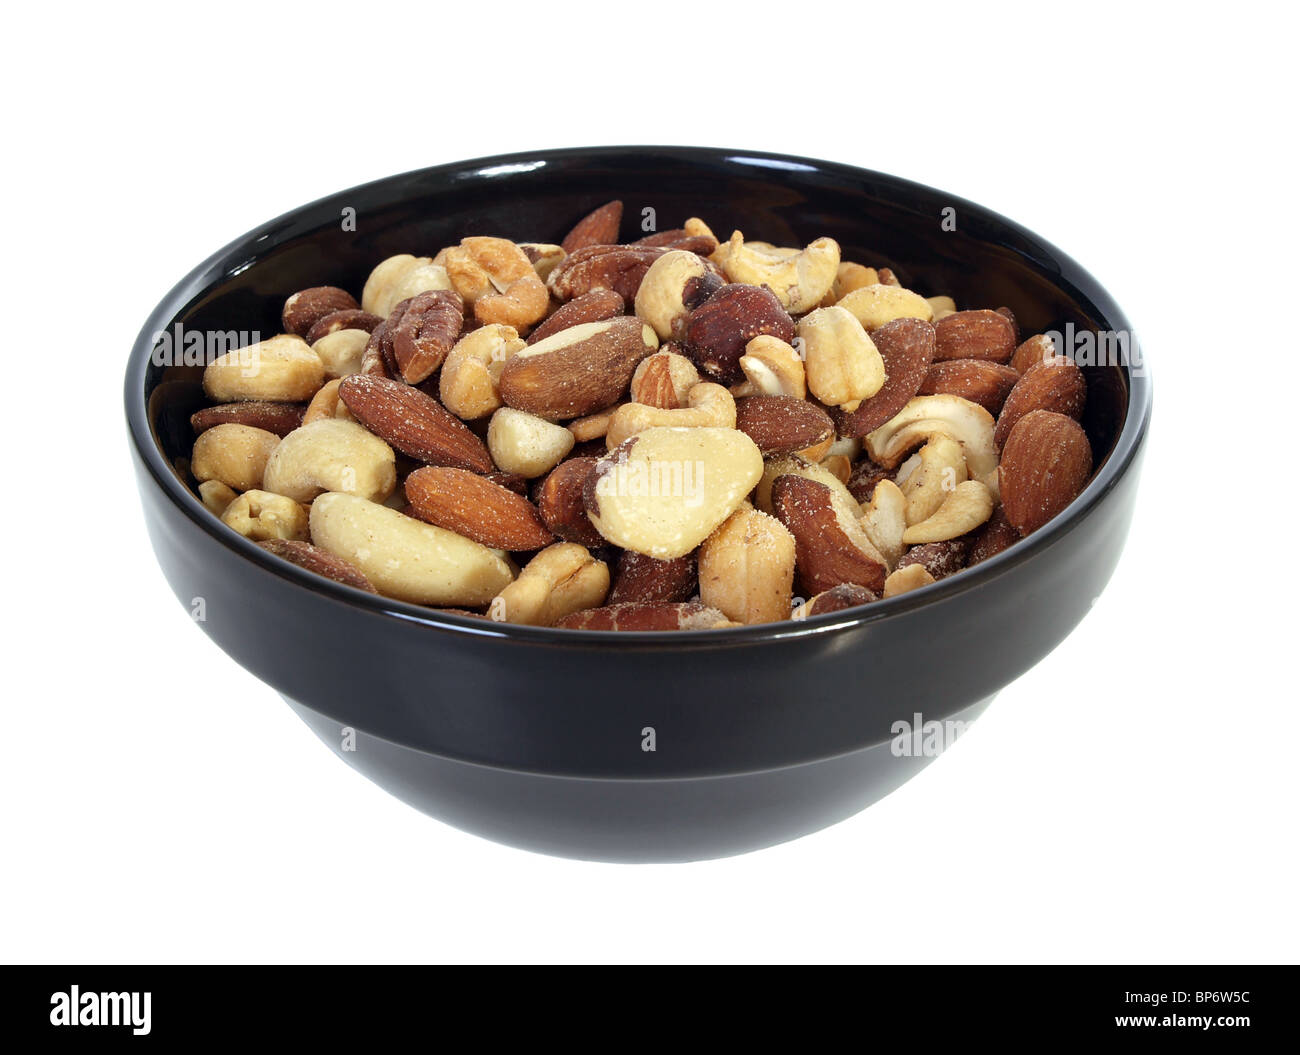 Bowl of deluxe, mixed, salted nuts. Isolated on white. - Stock Image